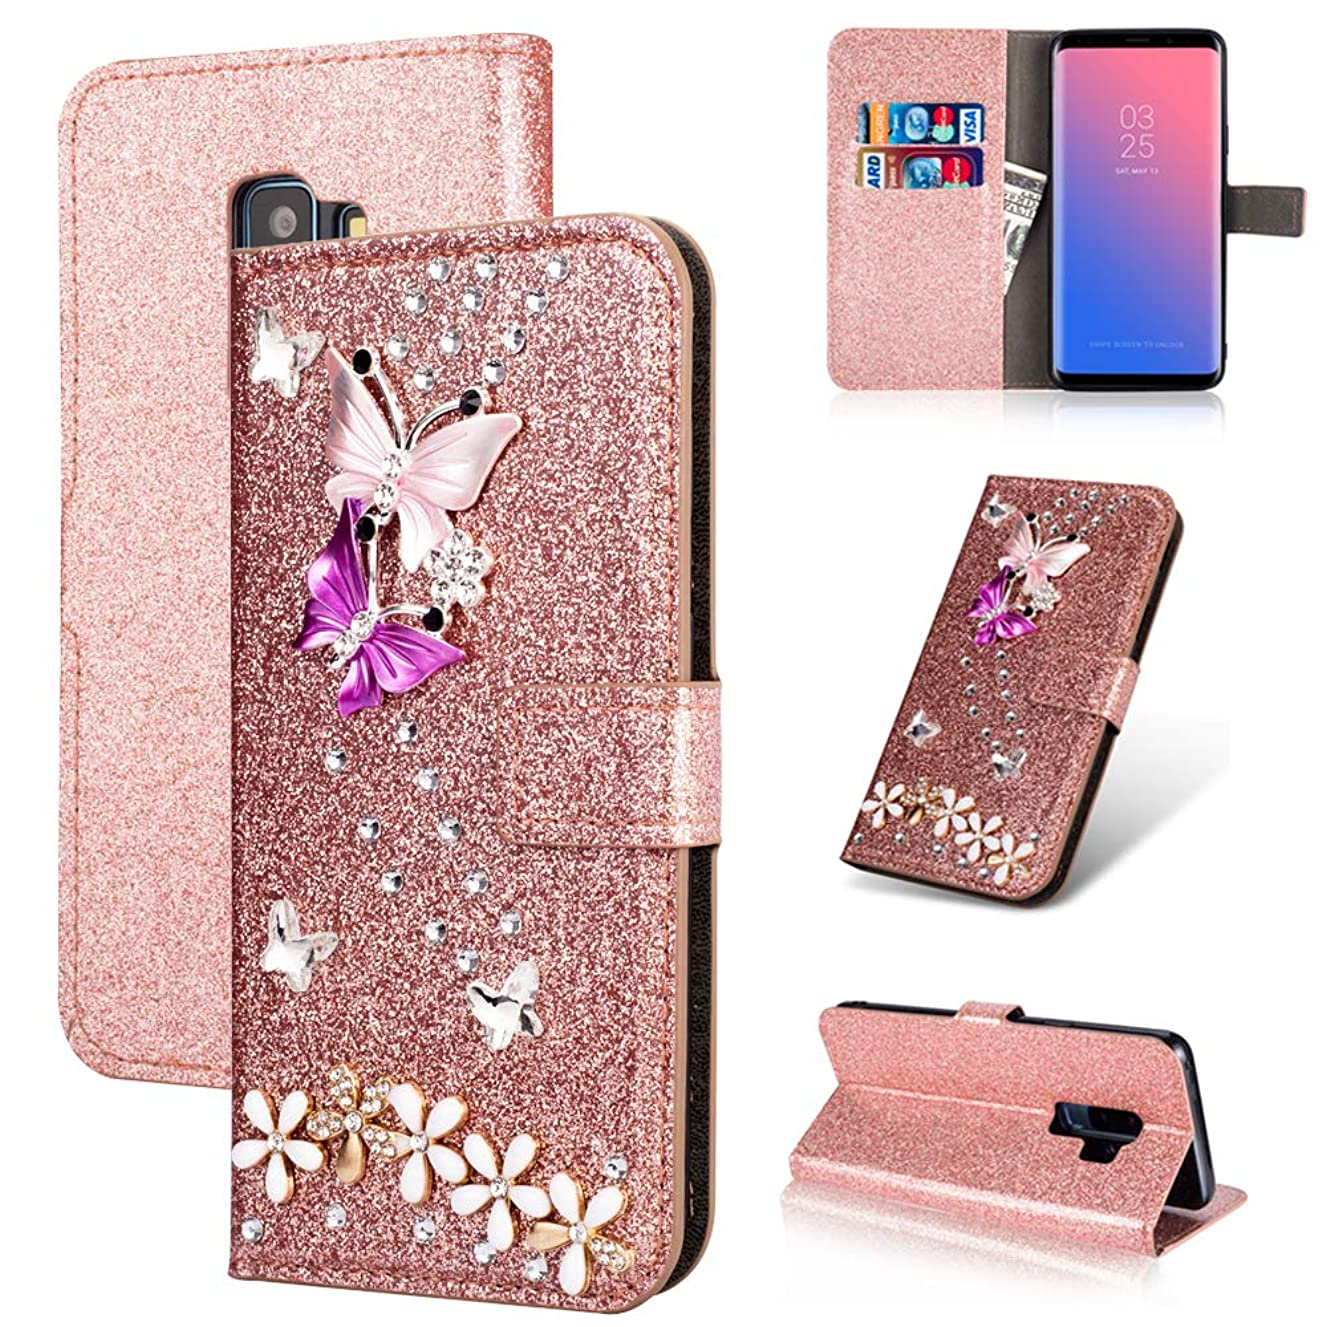 S9 Wallet Compatible with Samsung Gaxaly S9 Case Kickstand Glitter 9s Cover Girly Bling Samsum Glaxay gs9 Cover Luxury Sparkly ss9 Skins [Colorful Butterfly] [Credit Card Holder ID Slot] (Rose Gold)